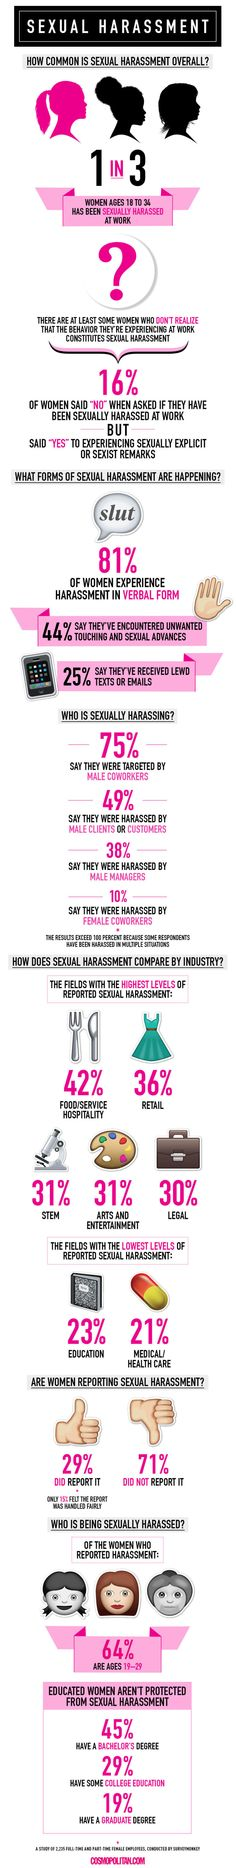 Should I write a research paper on sexual harassment or reverse discrimination?